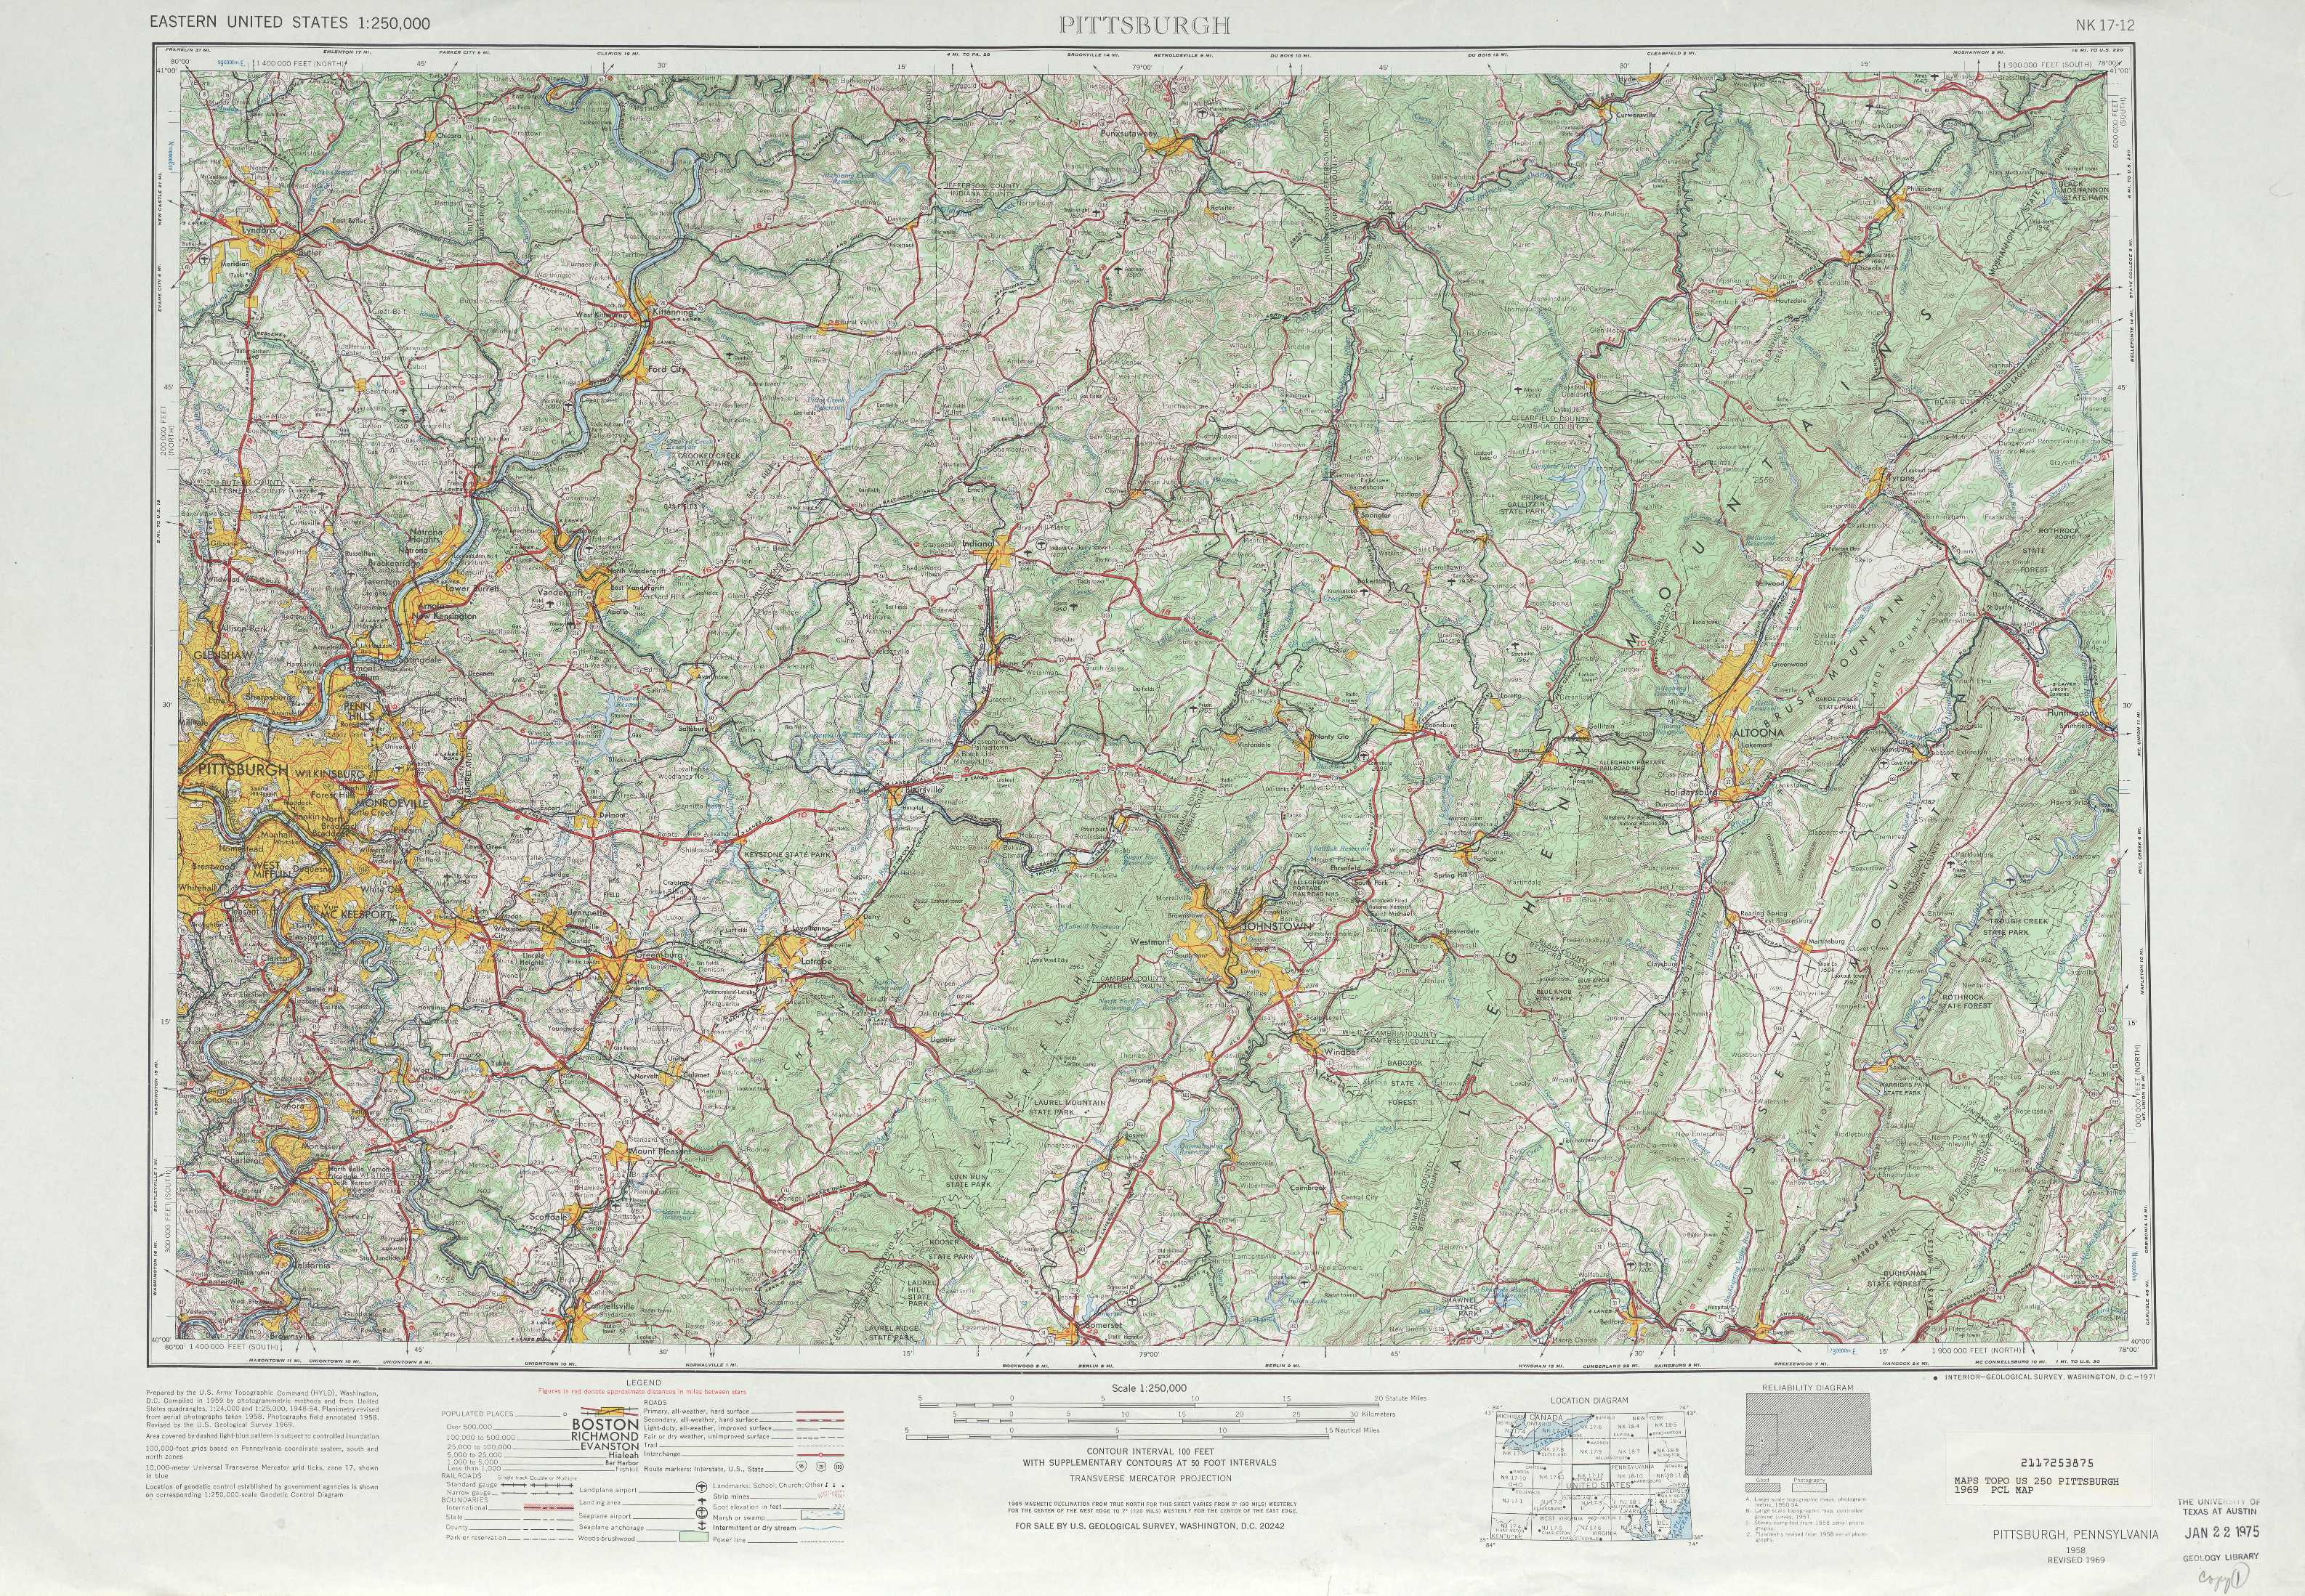 Pennsylvania Elevation Map Pennsylvania Outline Maps And Map - Washington dc interstate map